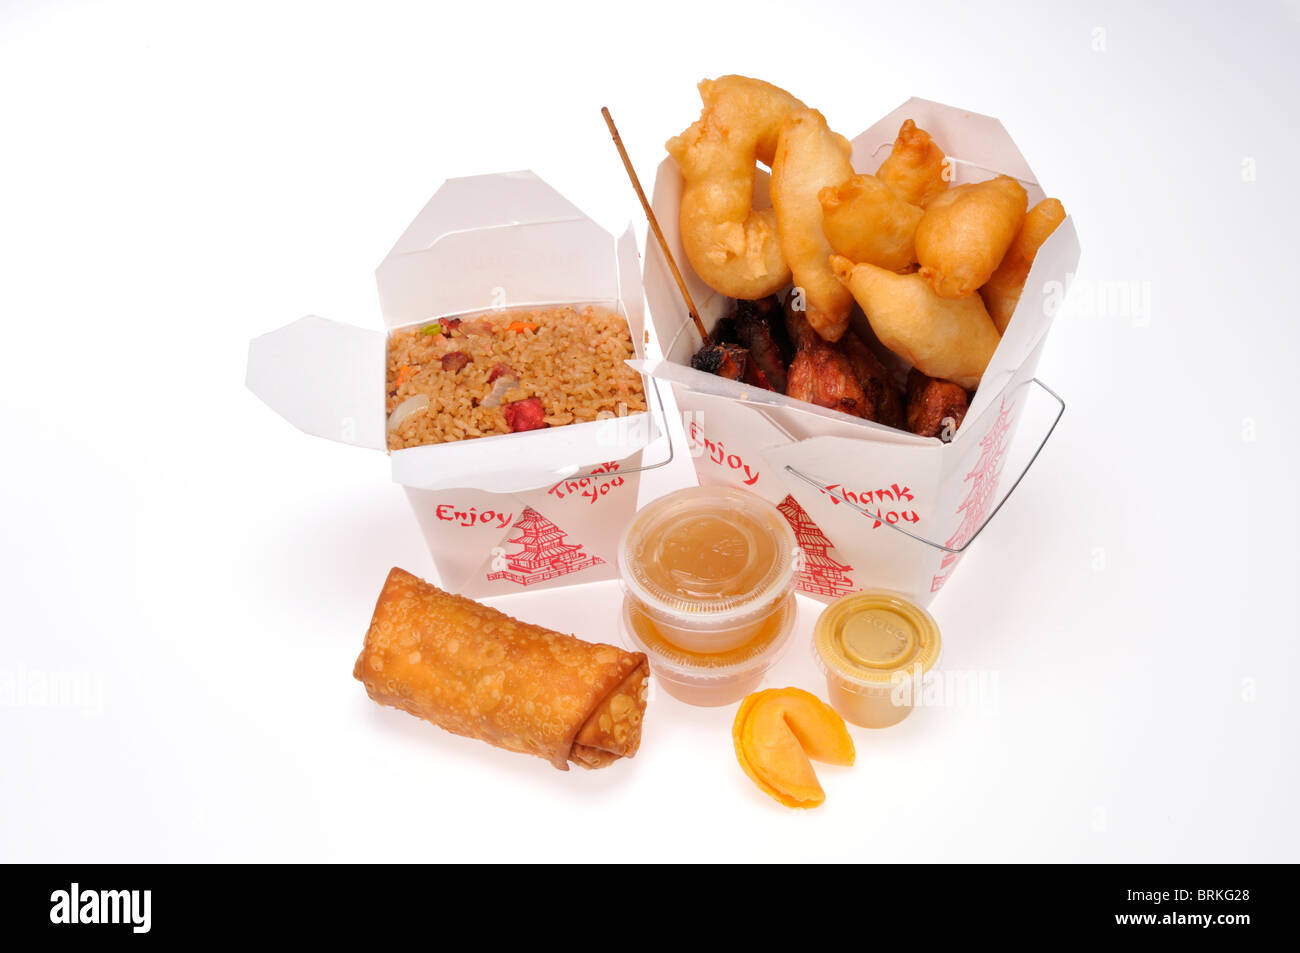 Fast Food Take Out Boxes